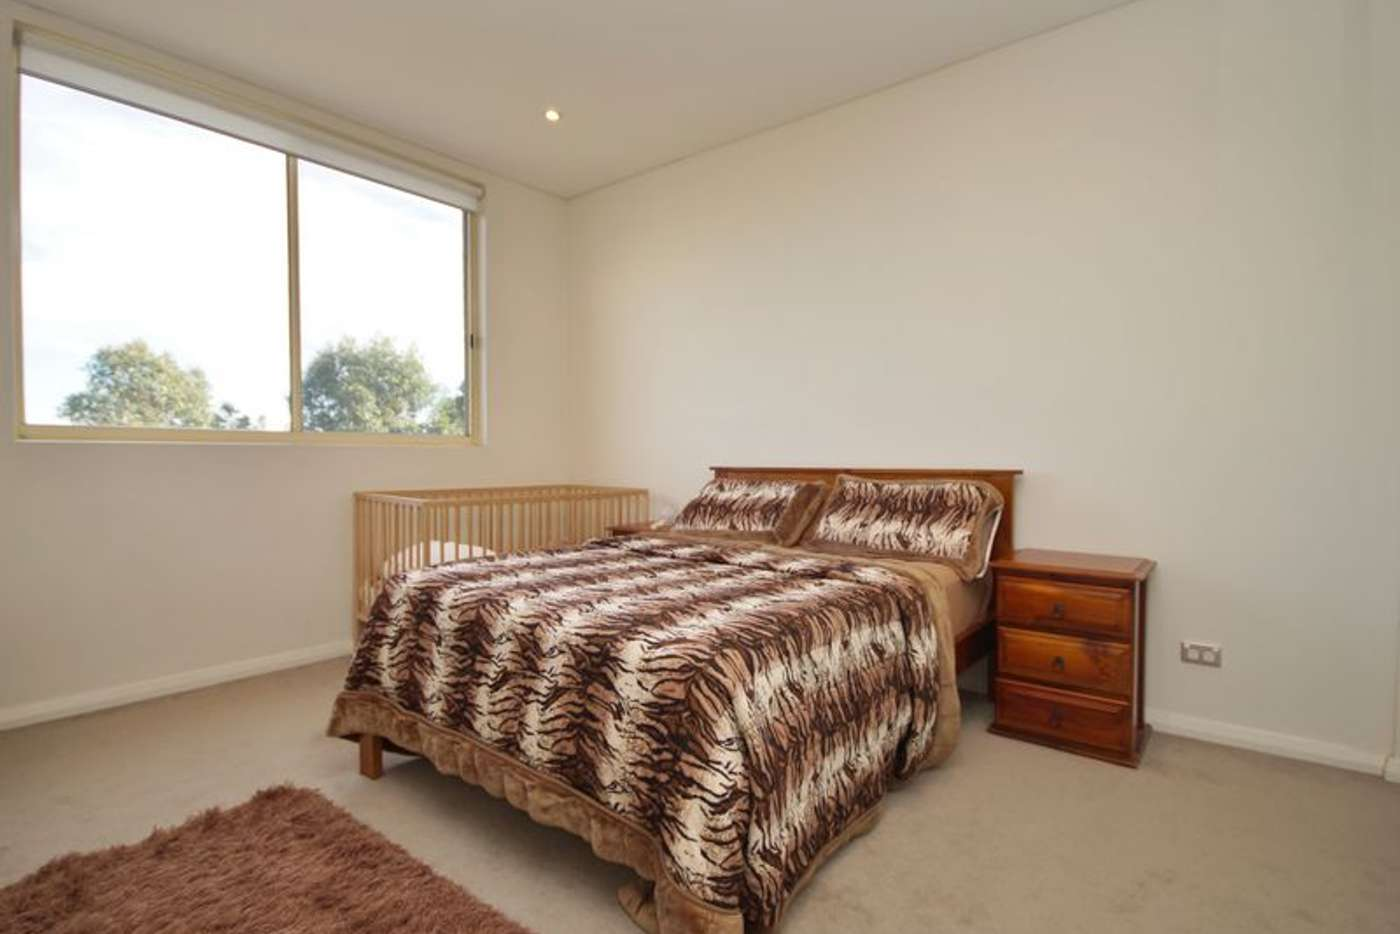 Sixth view of Homely apartment listing, 123/3 Carnarvon St, Silverwater NSW 2128